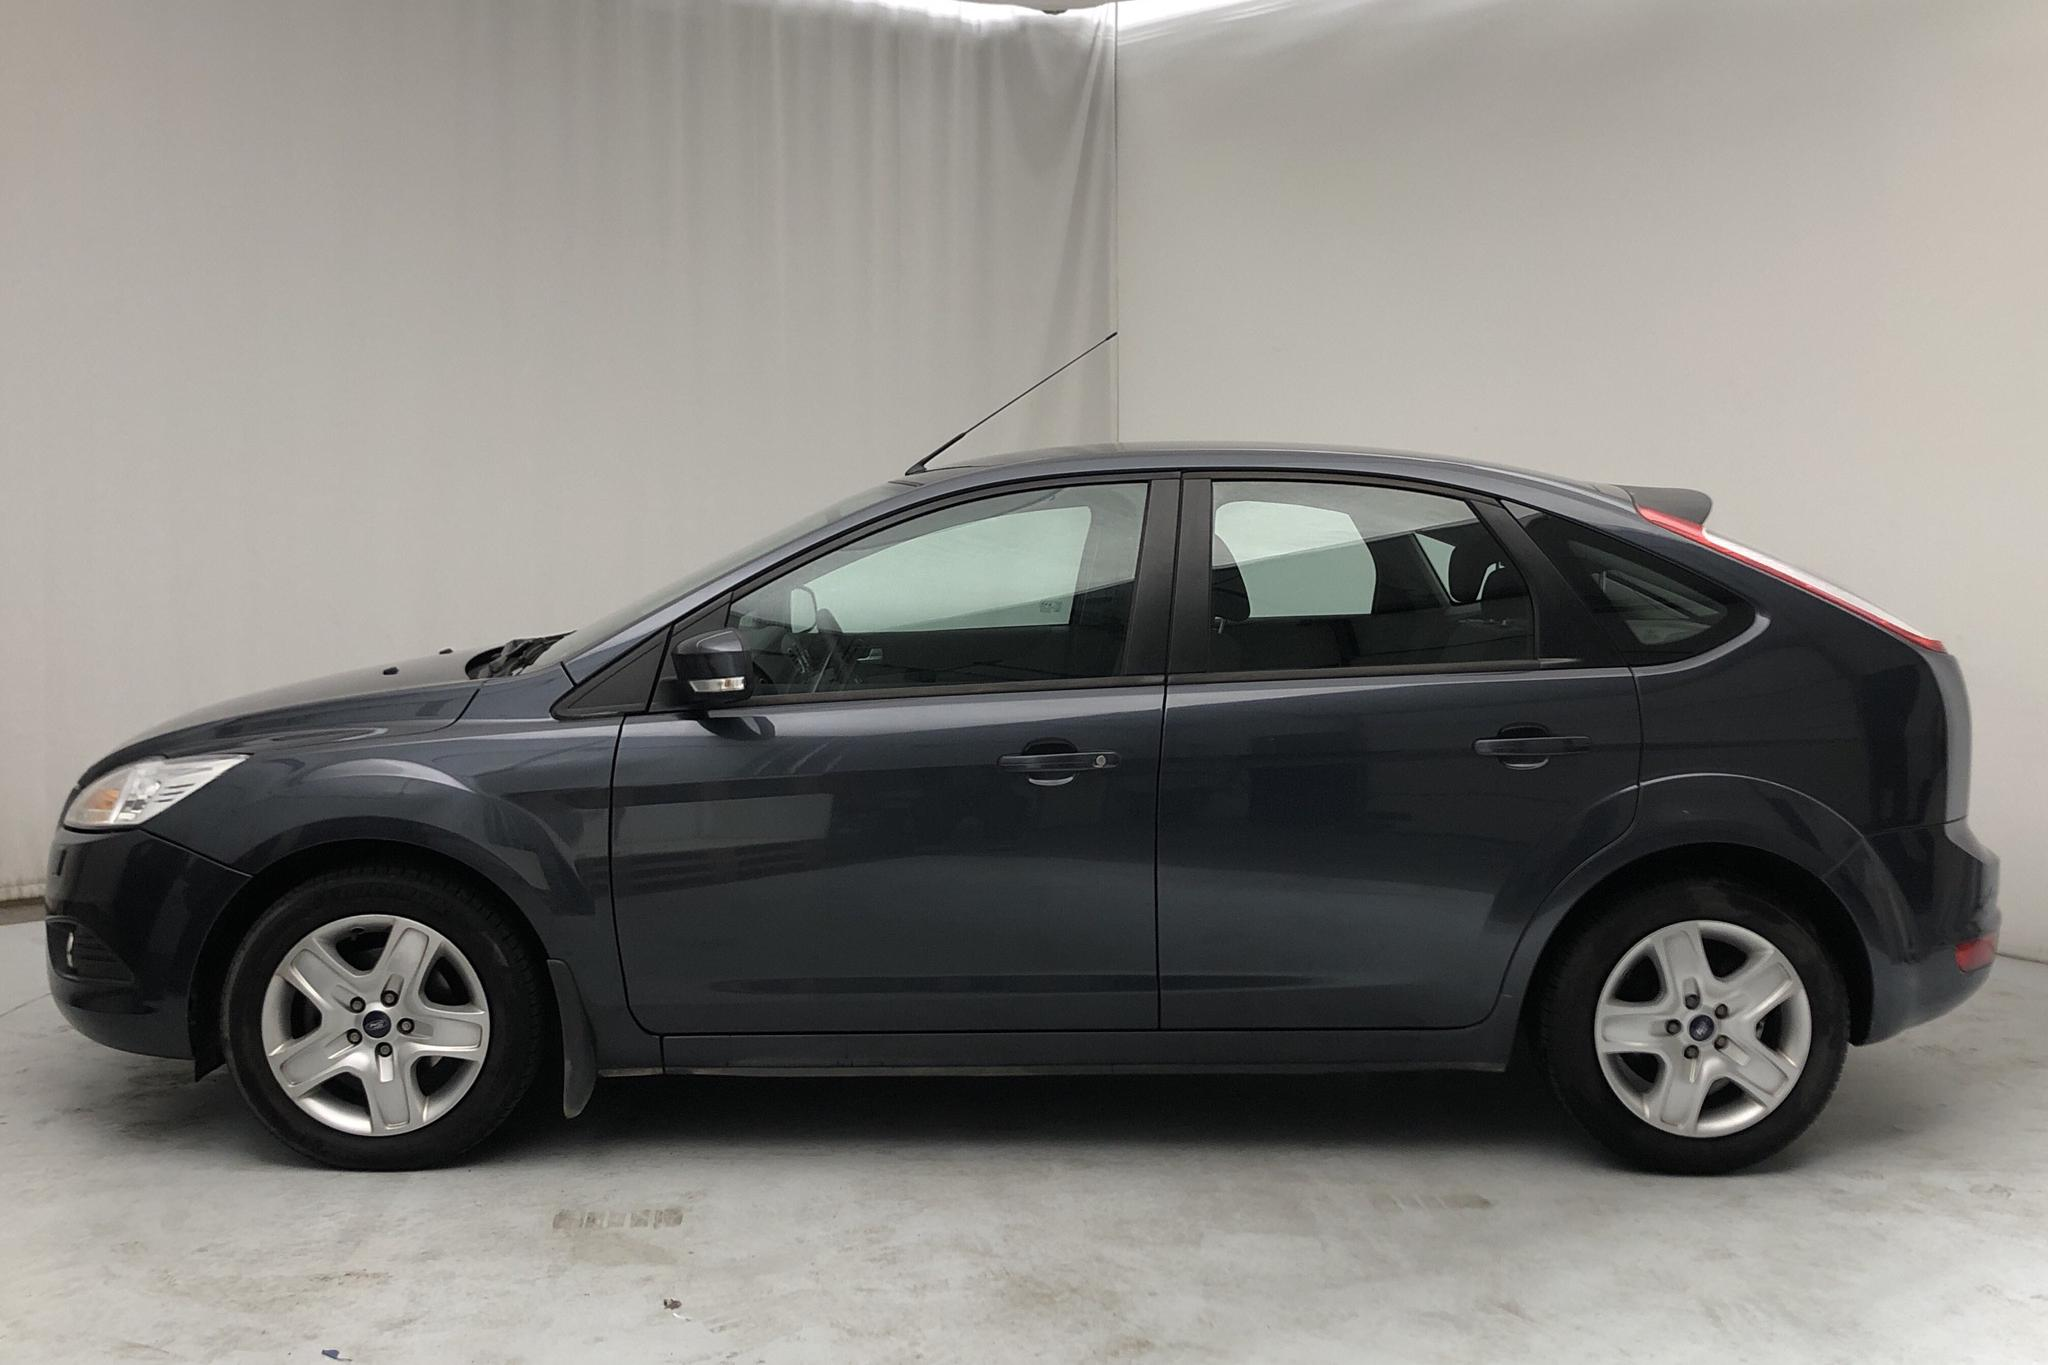 Ford Focus 1.6 TDCi ECOnetic 5dr (90hk) - 53 170 km - Manual - gray - 2010